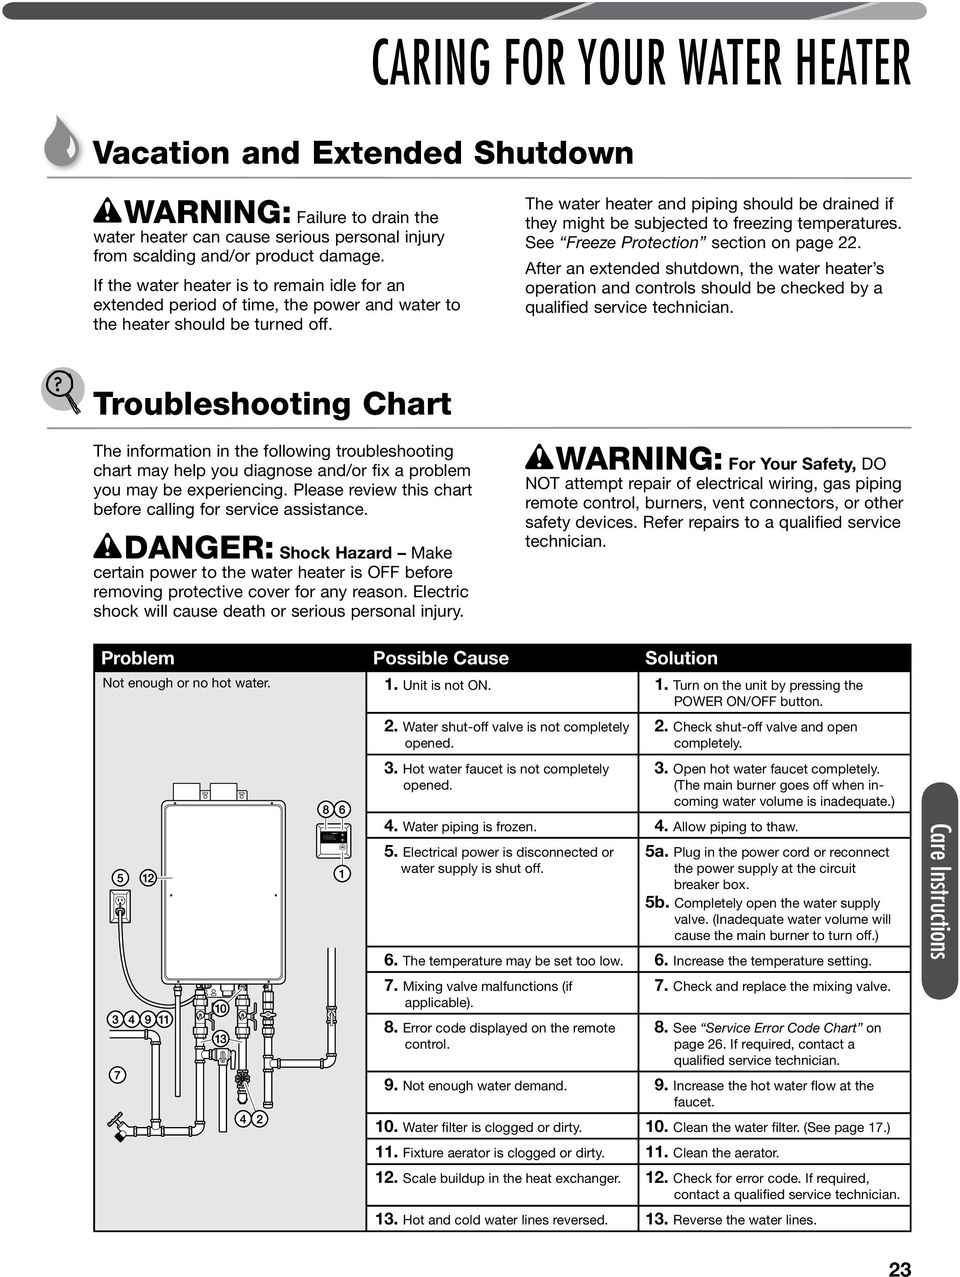 The water heater and piping should be drained if they might be subjected to freezing temperatures. See Freeze Protection section on page.